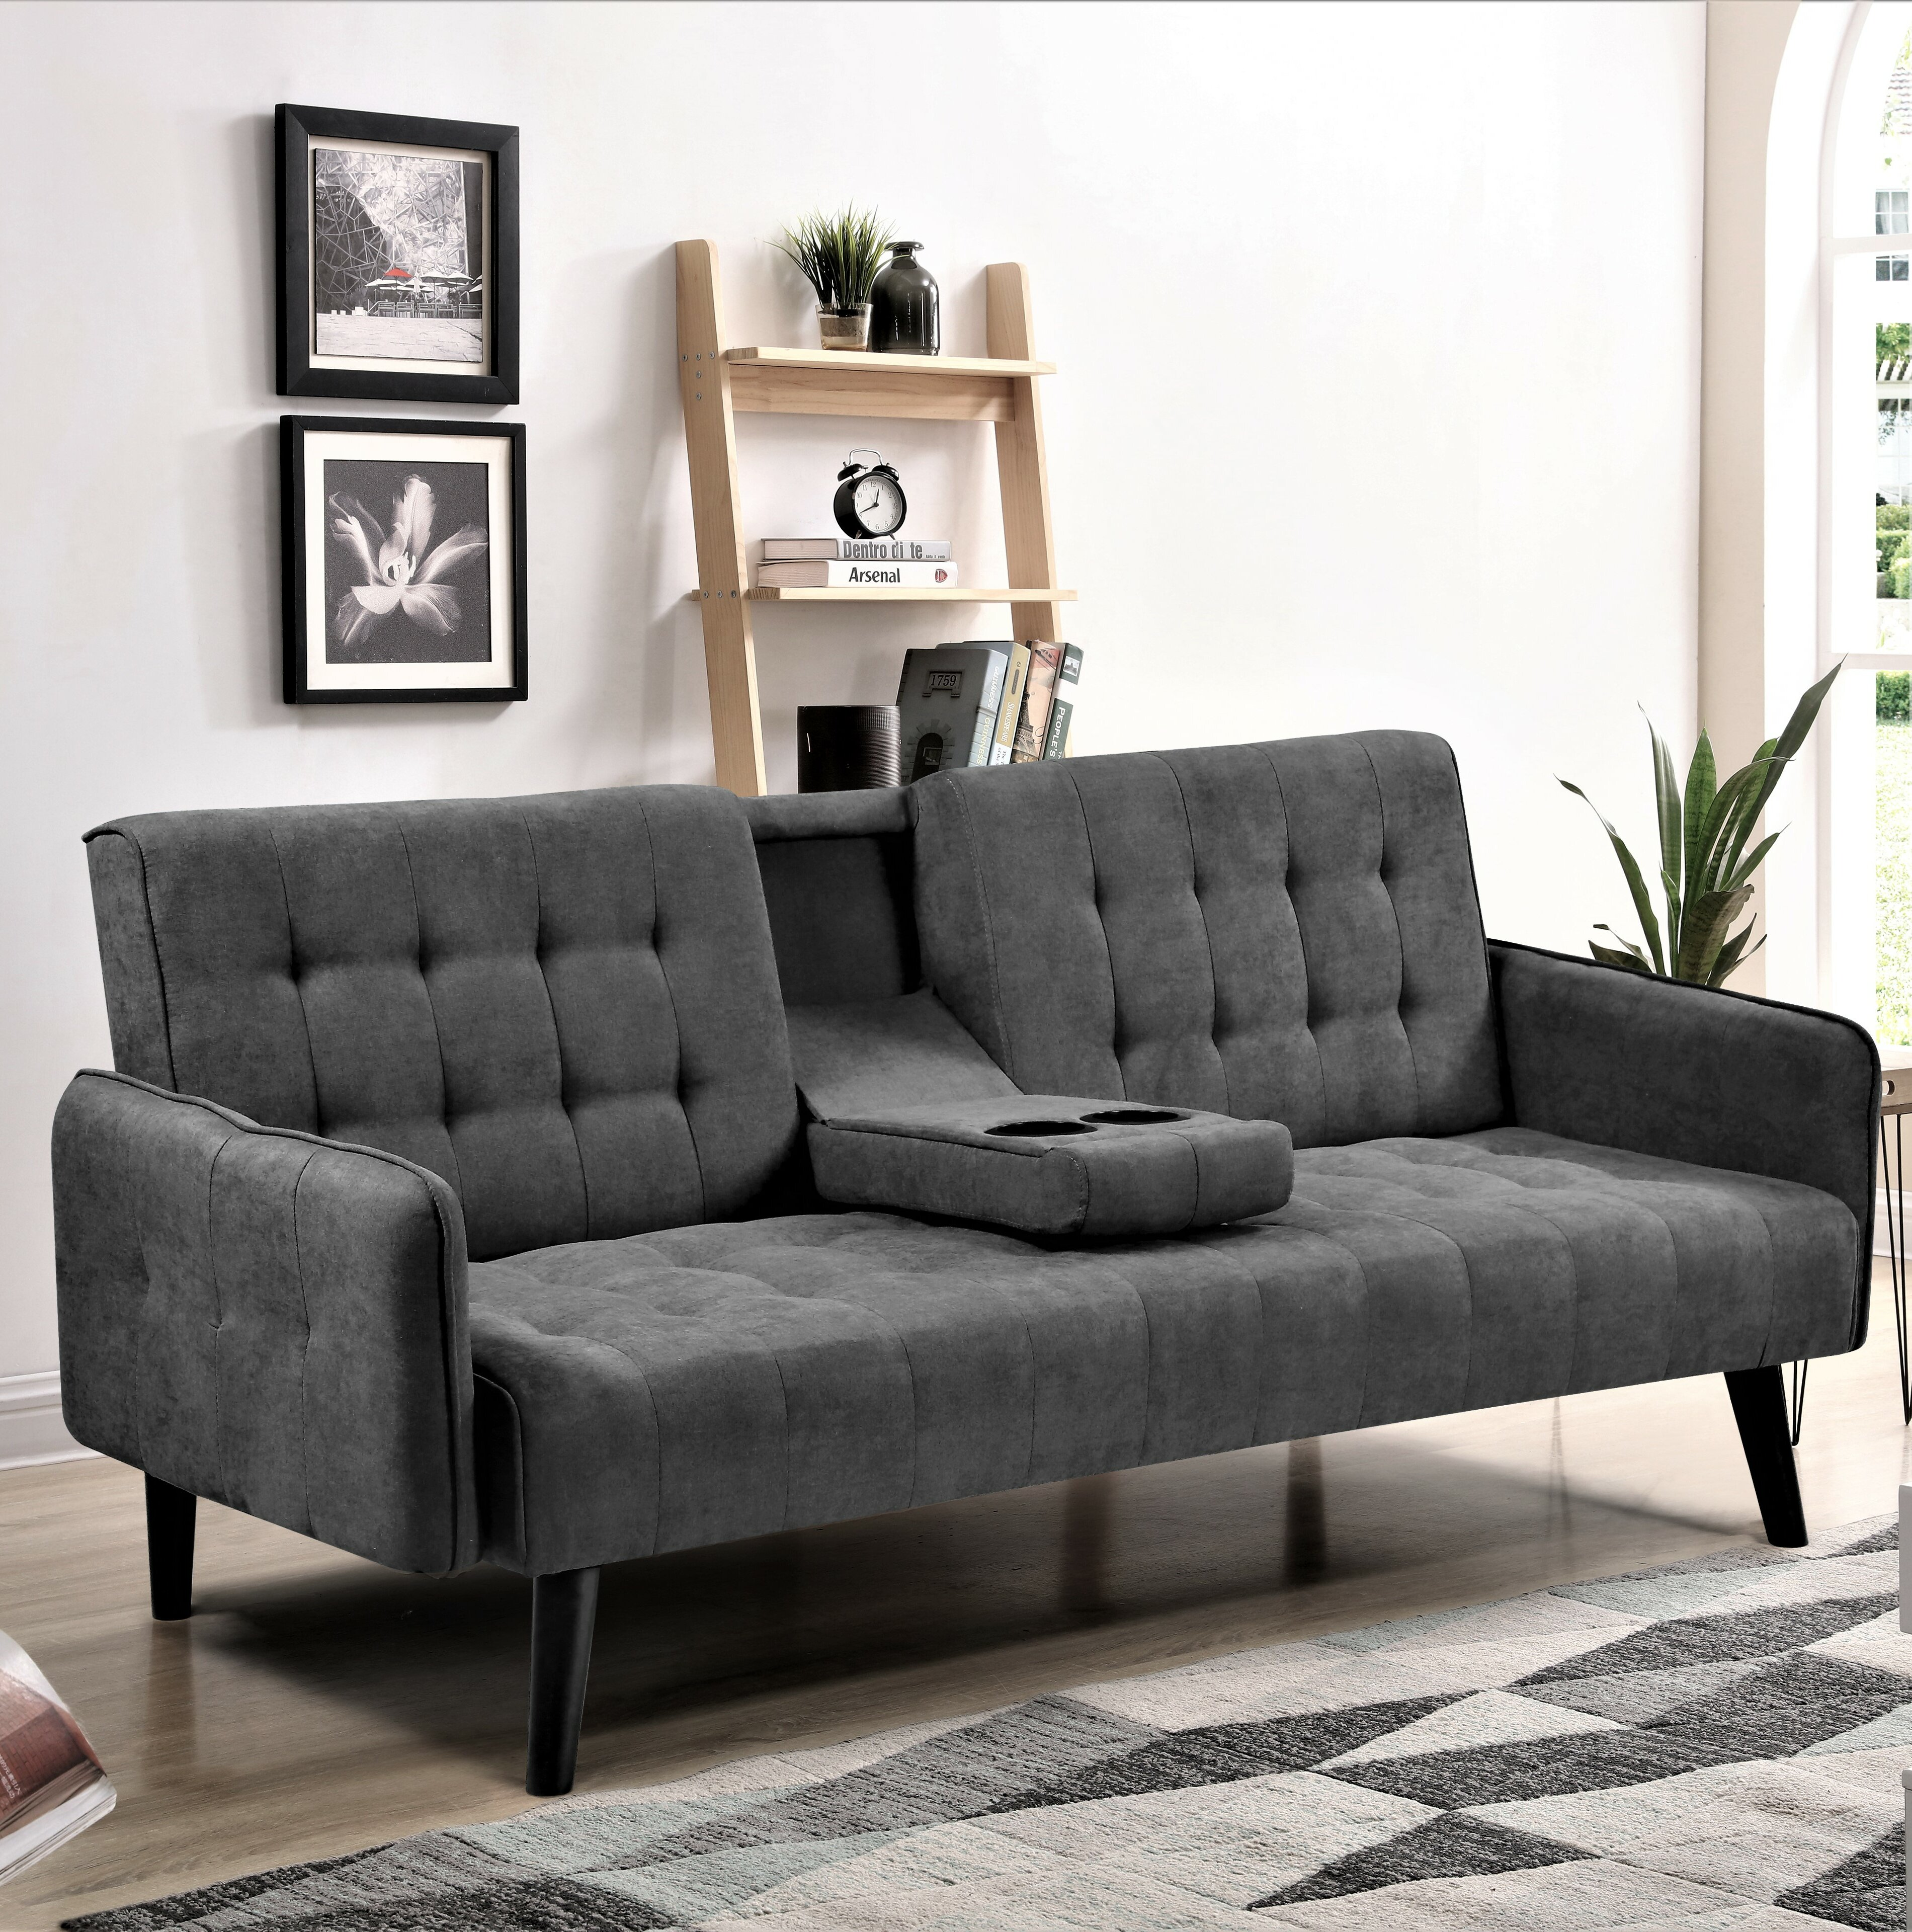 Sleeper Sofa With Cup Holders | Wayfair